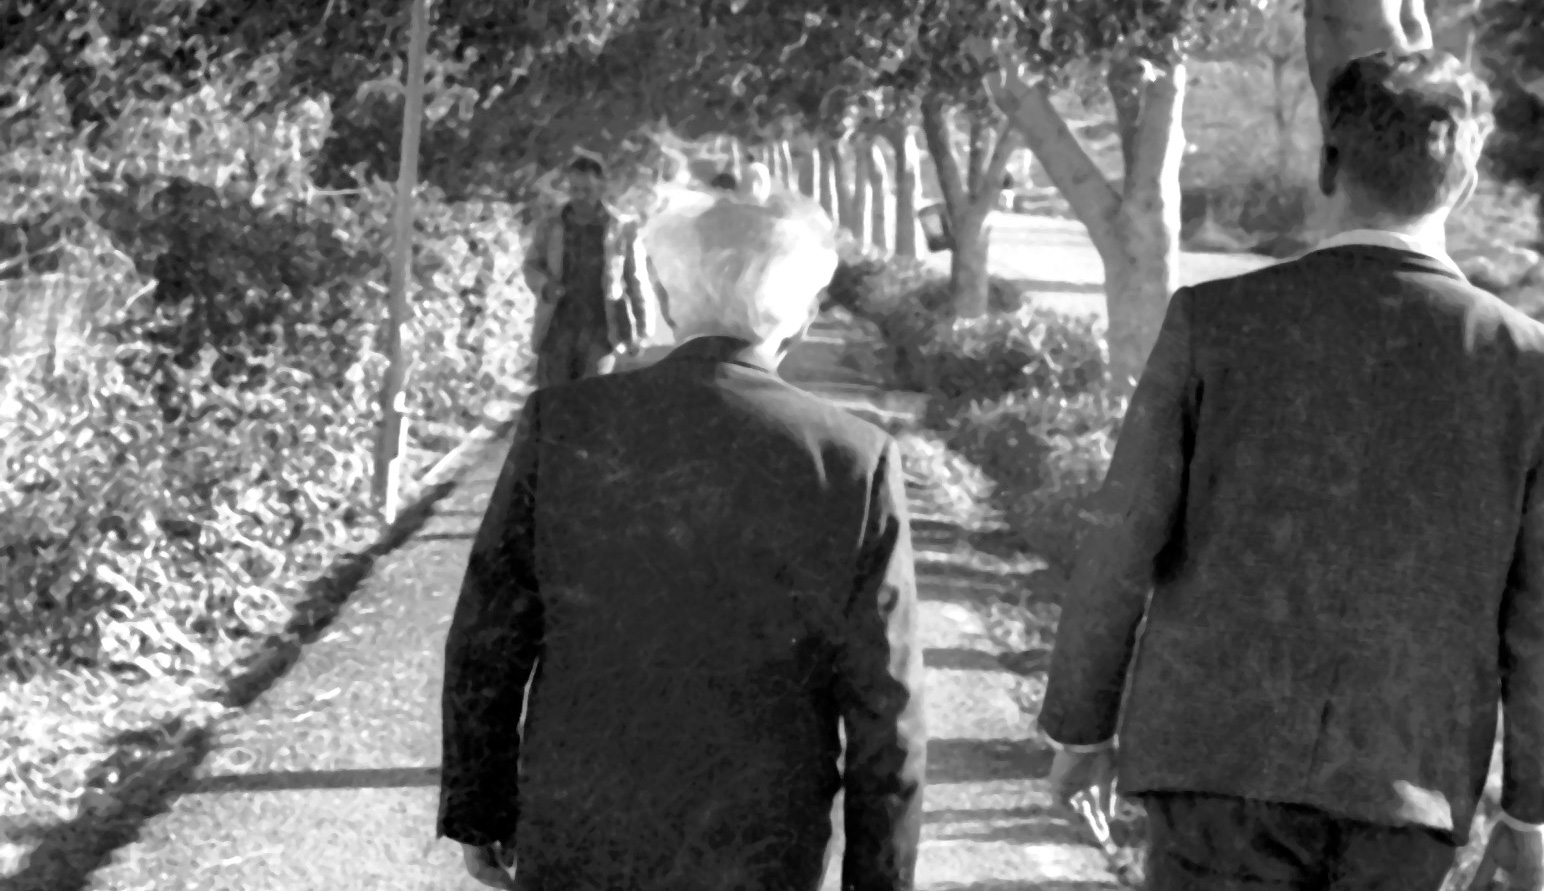 David Ben-Gurion with his bodyguard by the Sea of Galilee in 1969. The National Library of Israel, Dan Hadani's Archive [IPPA Staff].